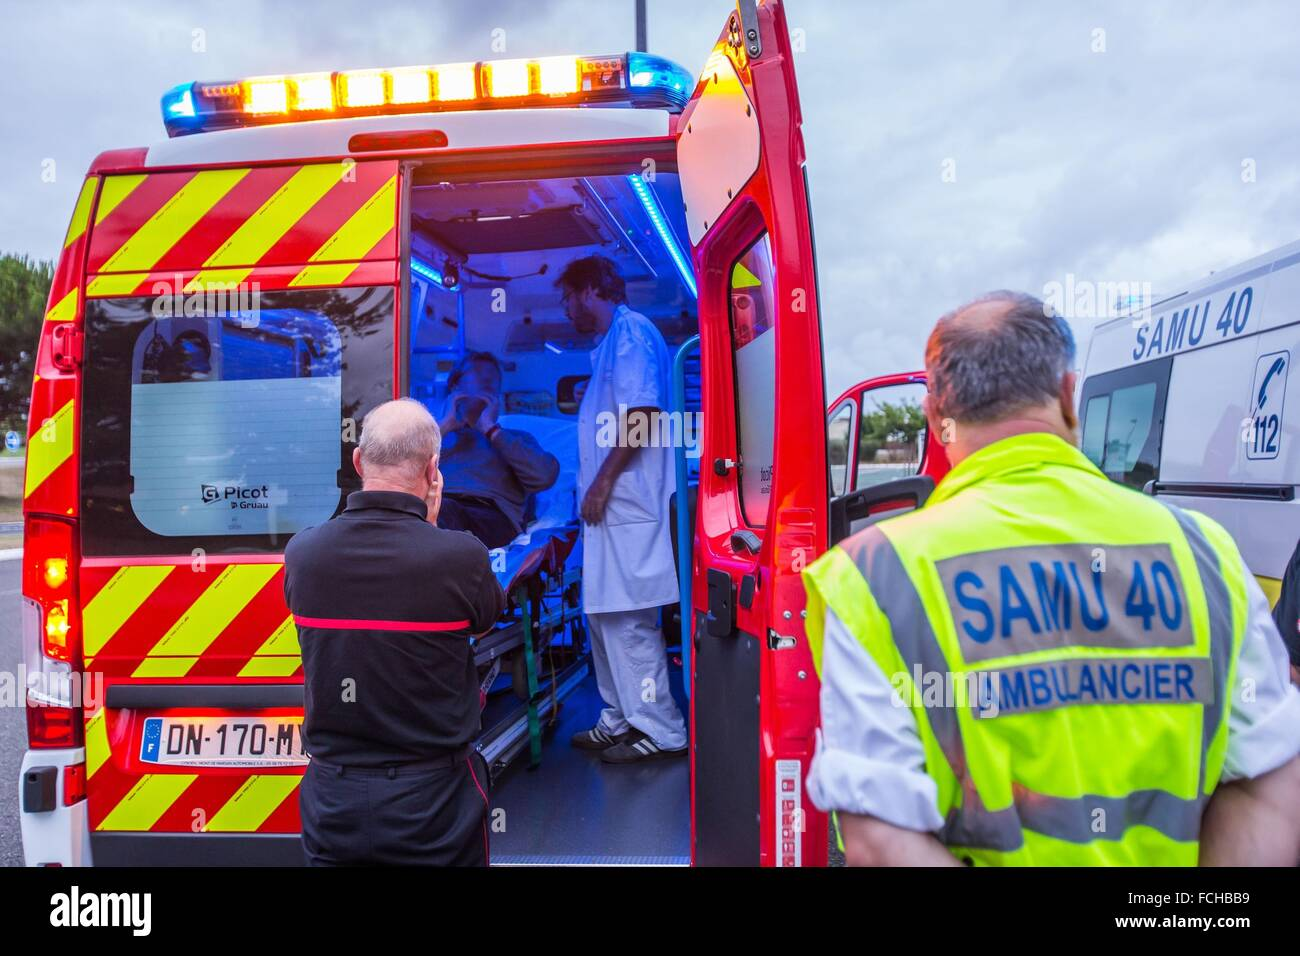 ILLUSTRATION EMERGENCY MEDICAL SERVICE AND FIREFIGHTERS Stock Photo